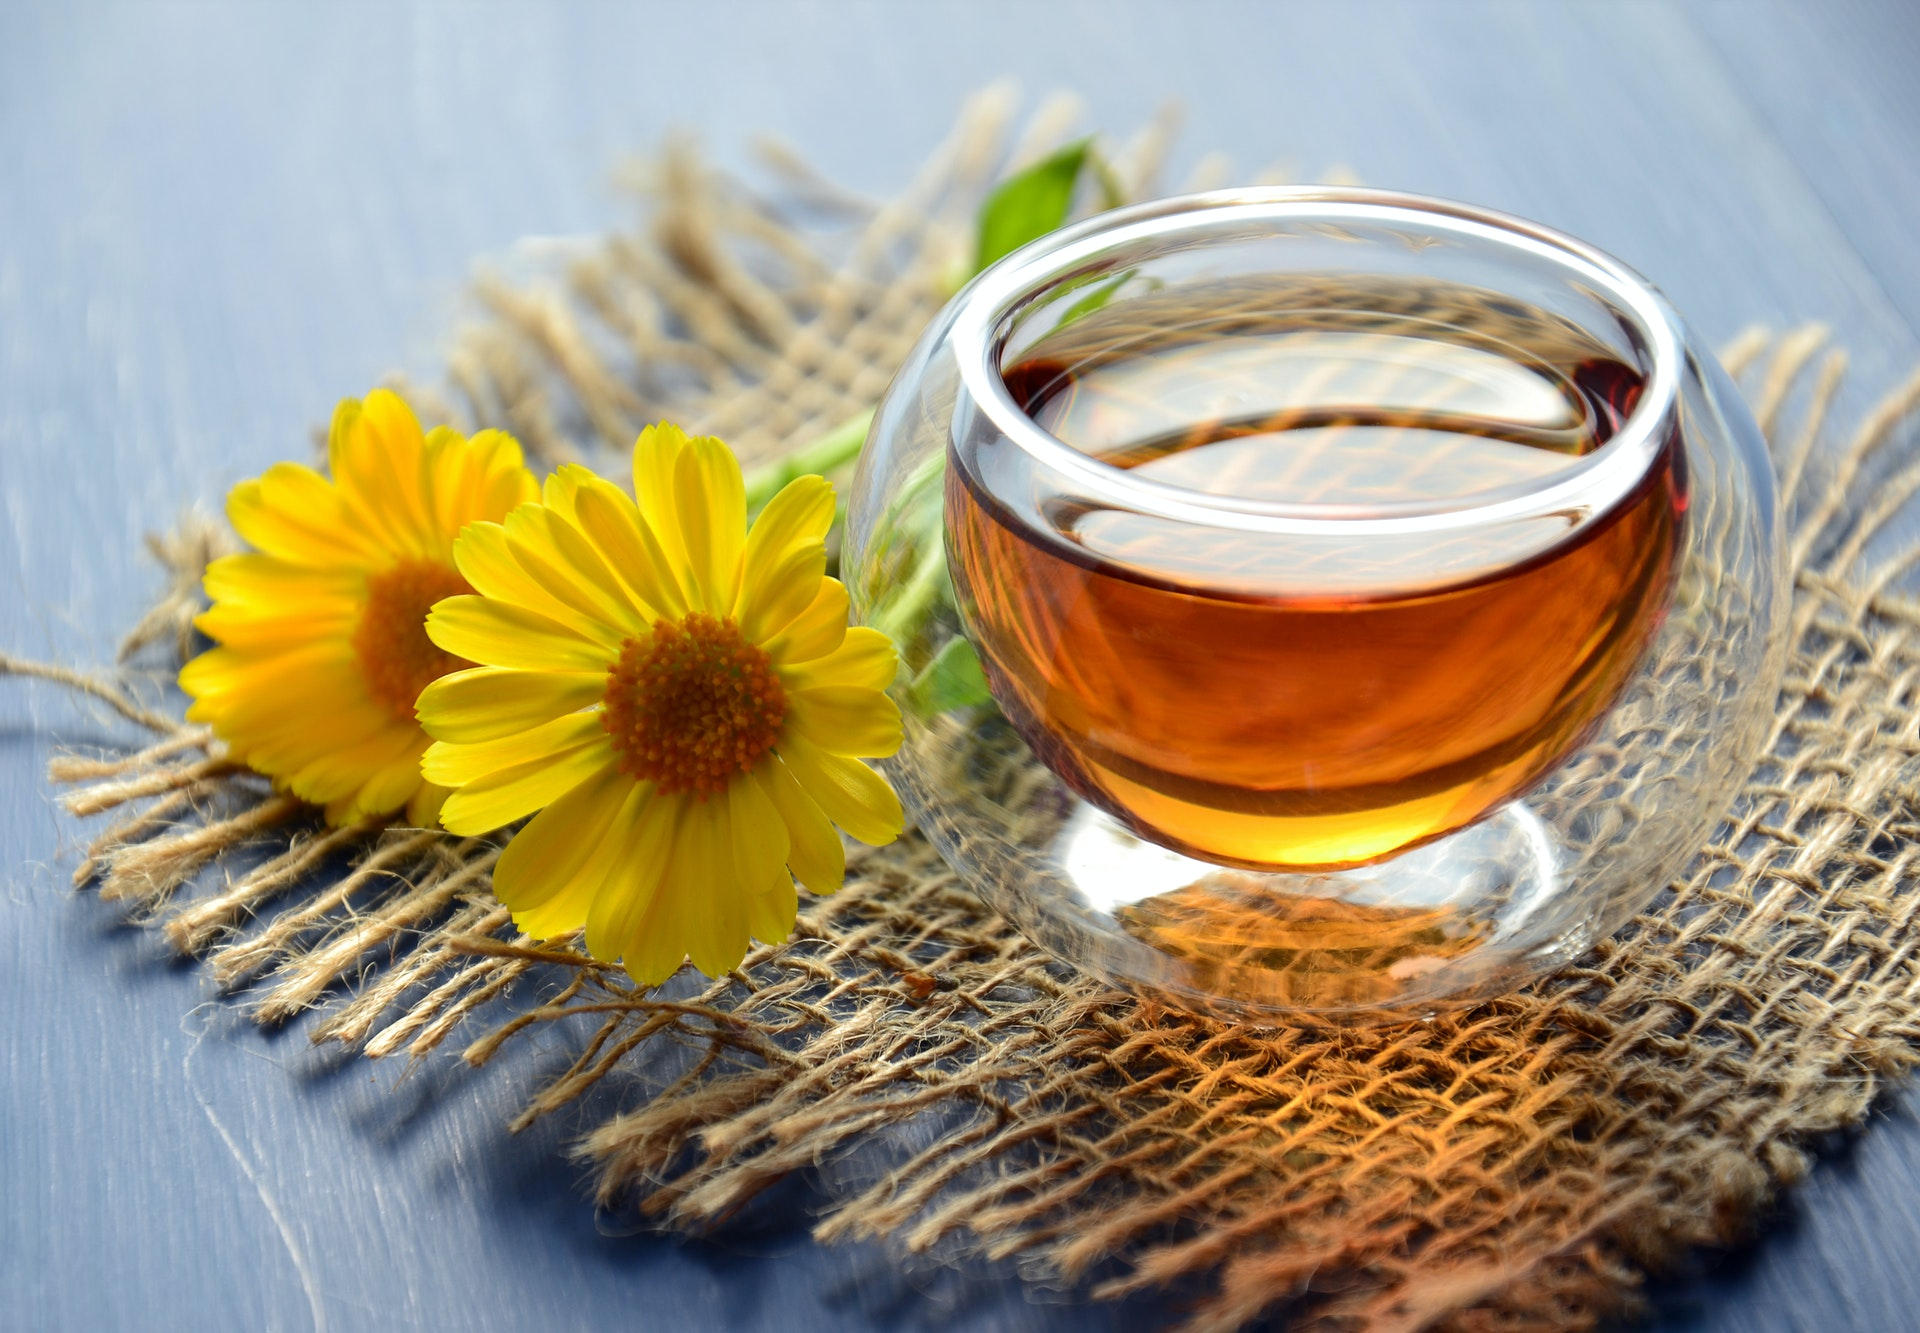 How to Use Local Honey to Improve Your Overall Health